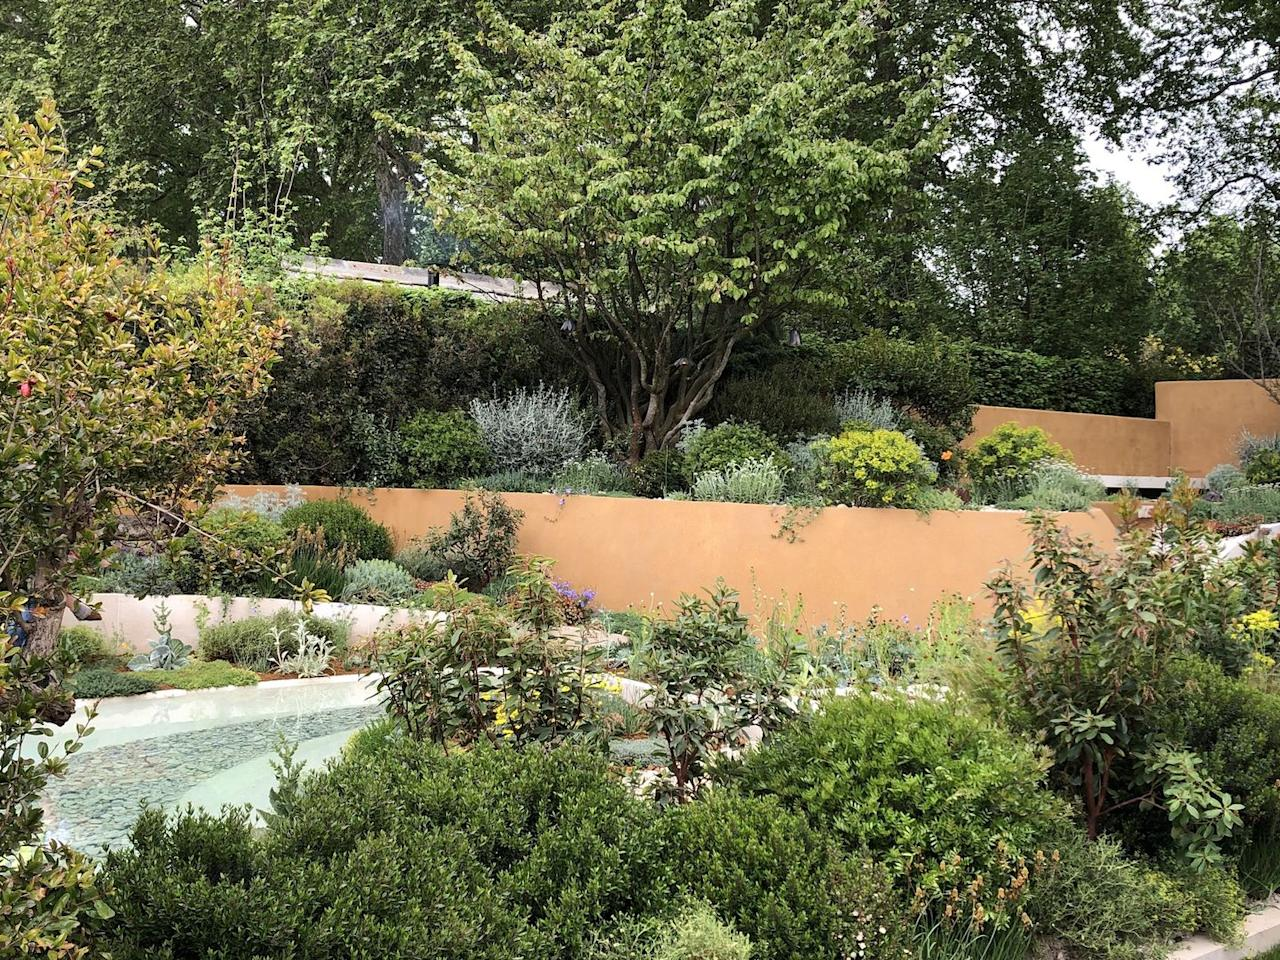 <p>The natural landscape is a major influence in gardens of all sizes this year.  <strong>Joe Perkins MSGD</strong> imagines the ever-changing coastal landscape using naturalistic seaside planting including Agapanthus, Sea Kale and the Australian Cushion Bush, while <strong>Tom Hoblyn MSGD </strong>takes inspiration from the wind-blown sand dunes of arid landscapes for his Middle Eastern garden. </p><p>More easily replicated is the planting on the Warner's Distillery garden by <strong>Helen Elks-Smith MSGD,</strong> inspired by the English countryside and including a wildflower turf embedded with local species of Cowslip, Achillia and Harebell and a swathe of native hedgerow. Elsewhere, in <strong>Sue Hayward's </strong>artisan garden, the designer has created a haven for wildlife.   </p><p><em>Image: Tom Hoblyn MSGD</em></p>